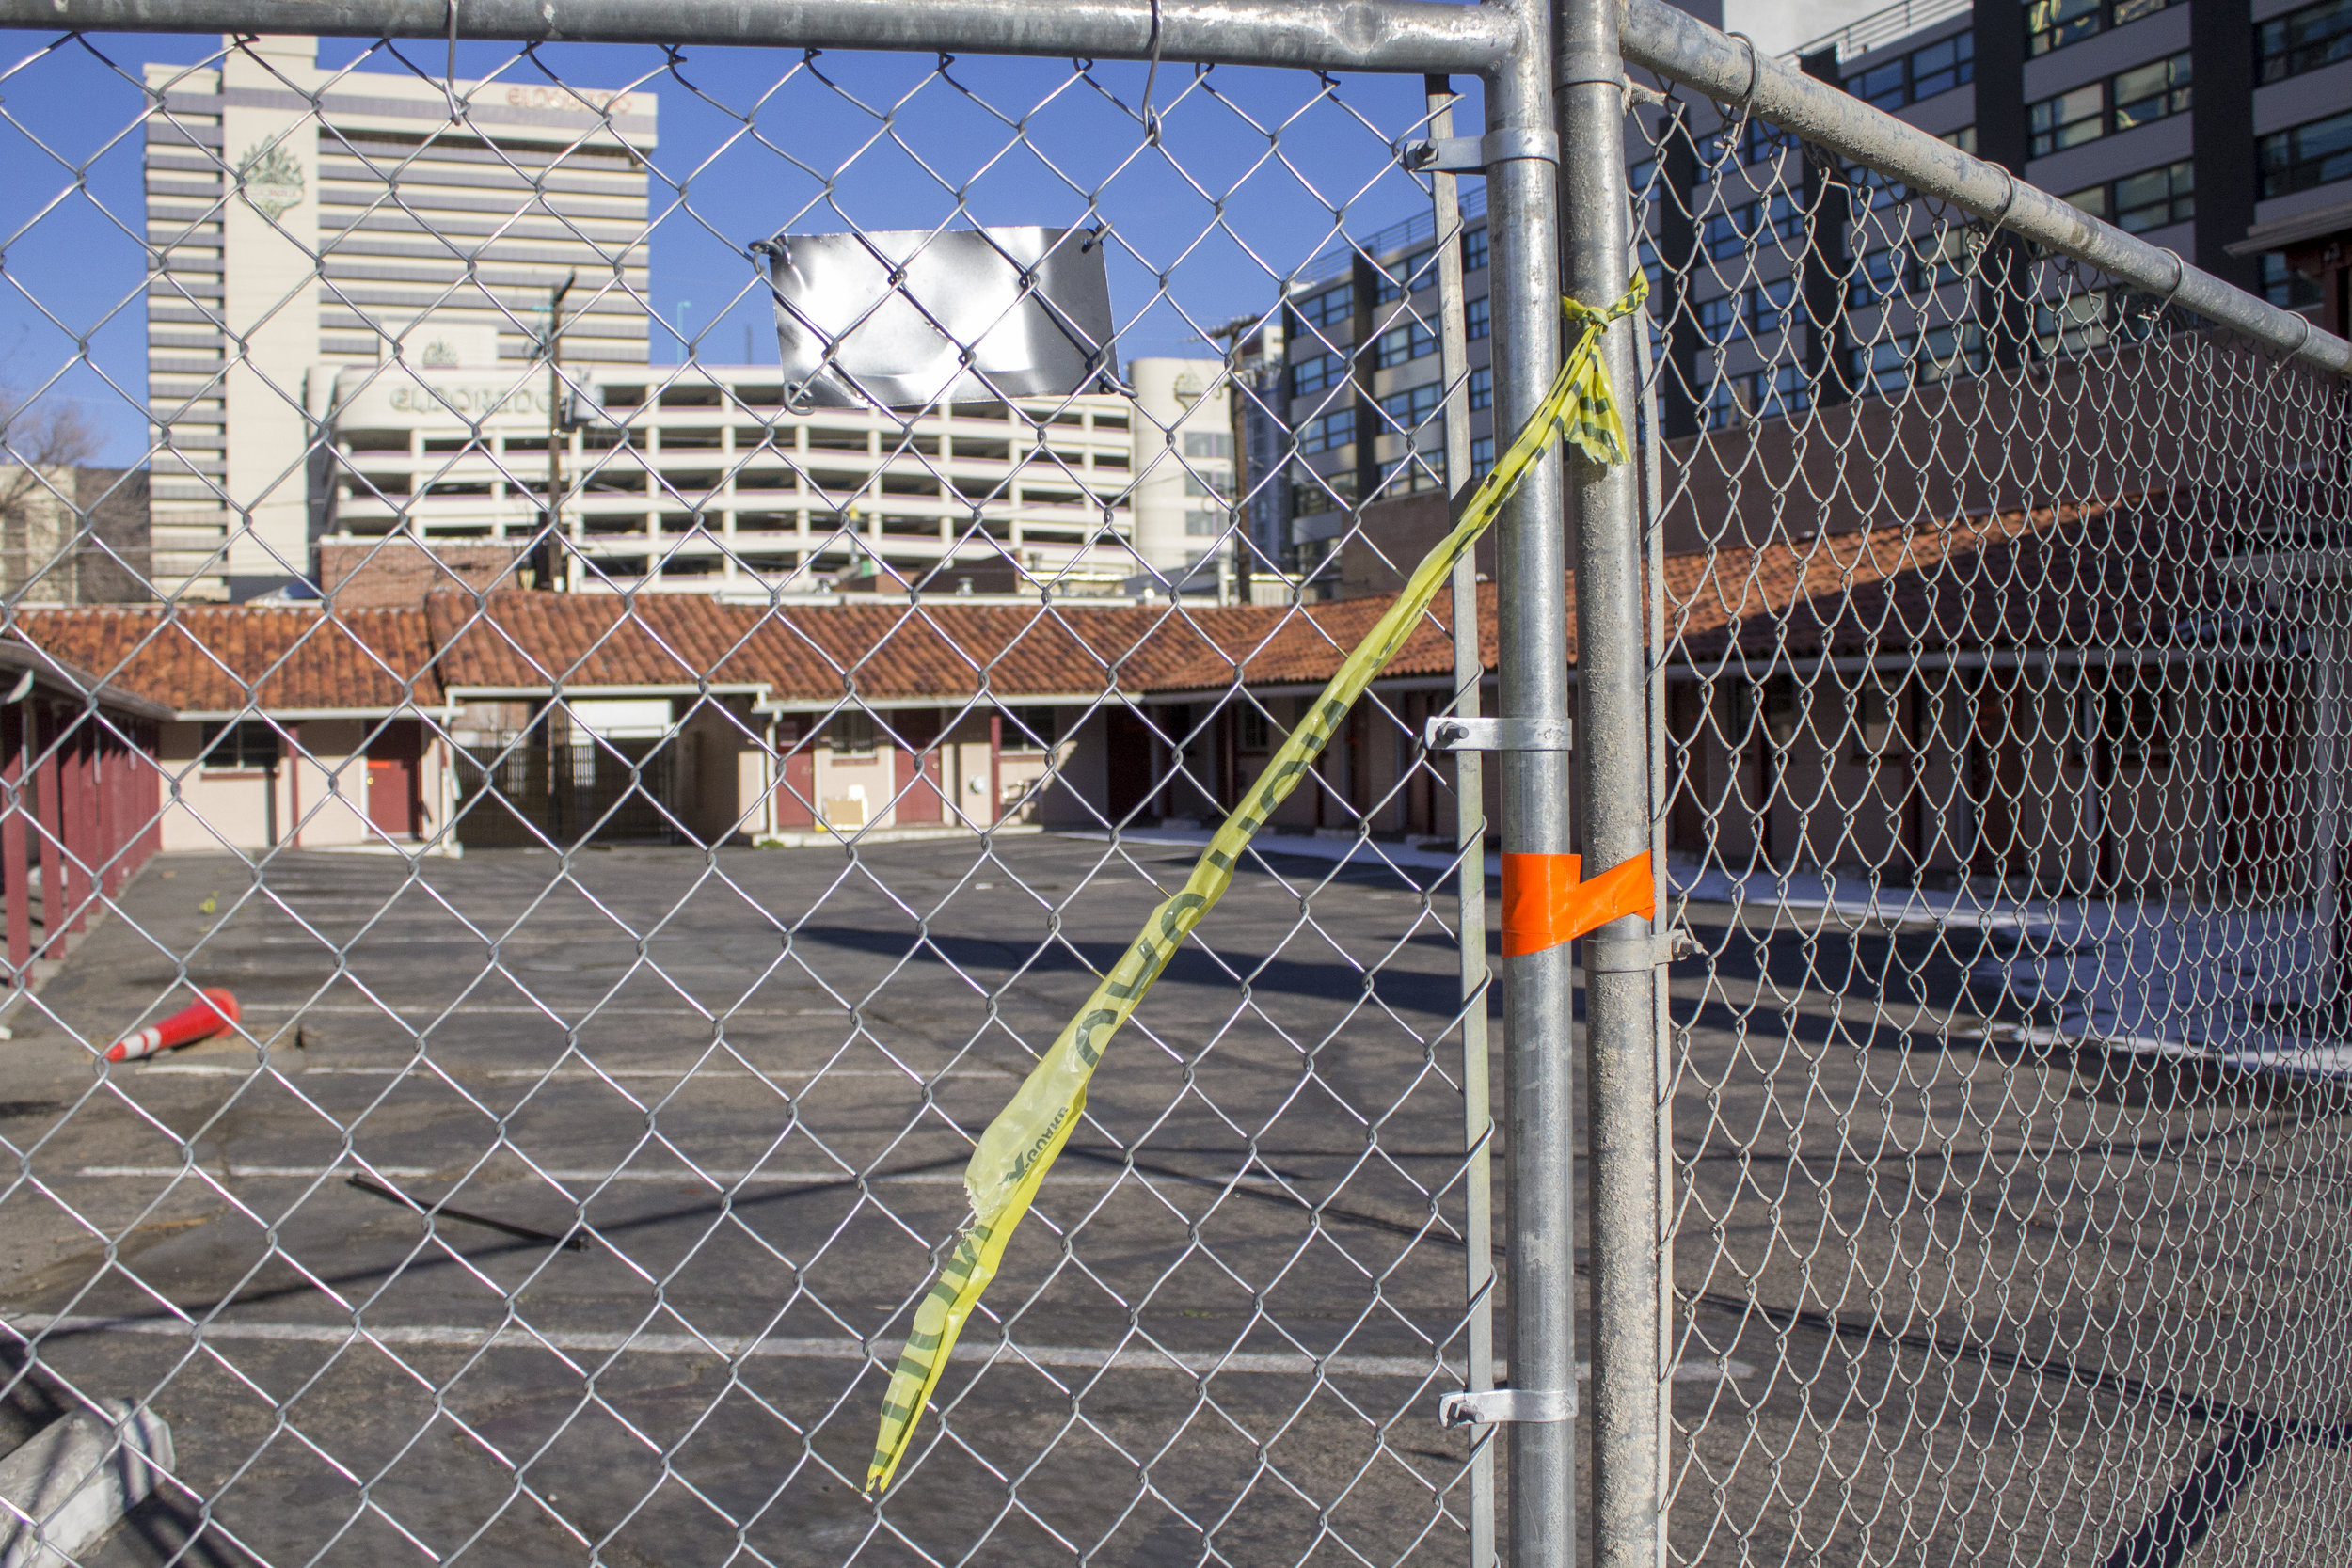 Motels are being bought out and razed to the ground as Reno redevelops, but what about those who rely on motels for their long term lodging? Photo by Robyn Feinberg for Our Town Reno.